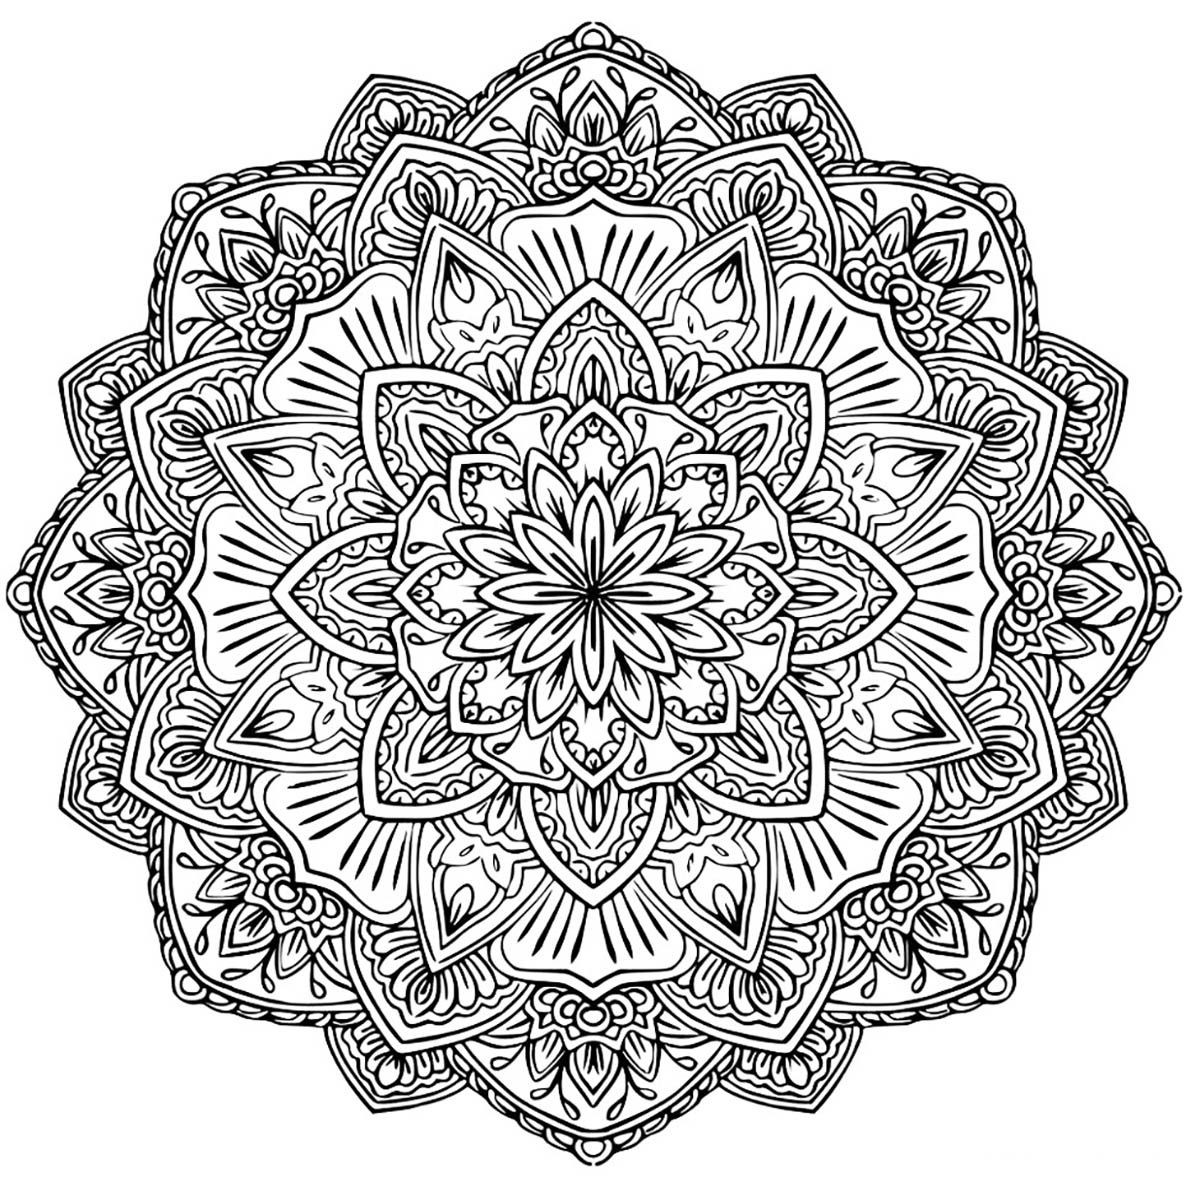 Mandala To Download In Pdf 1from The Gallery Mandalas Mandala Coloring Mandala Coloring Books Mandala Coloring Pages